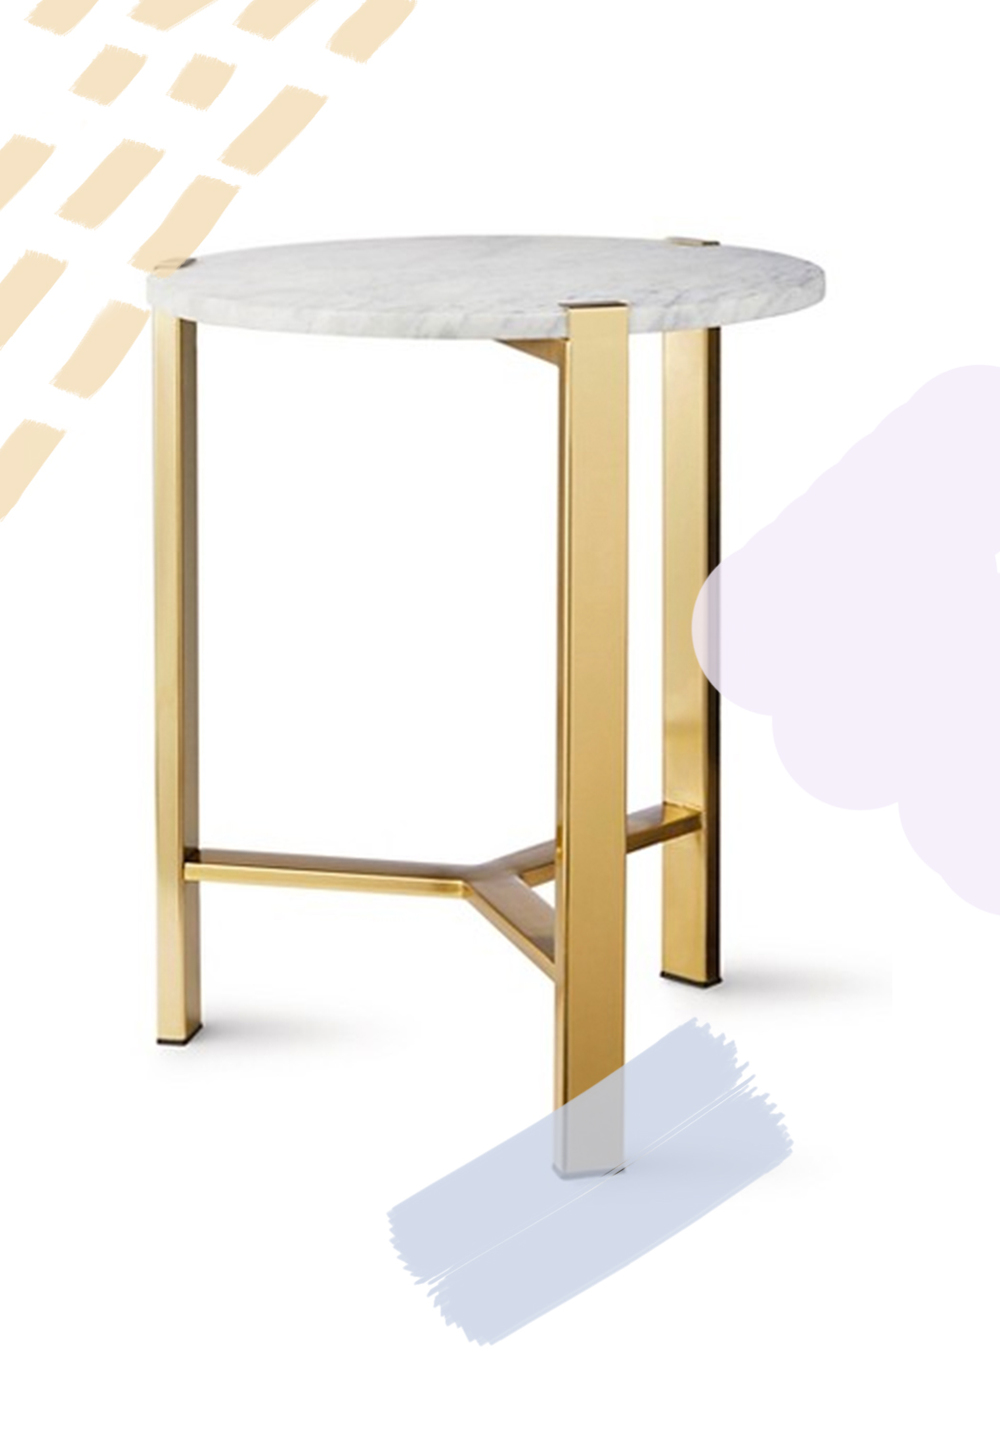 Target - Nate Berkus - Round Gold Accent Table With Marble Top - $89.99